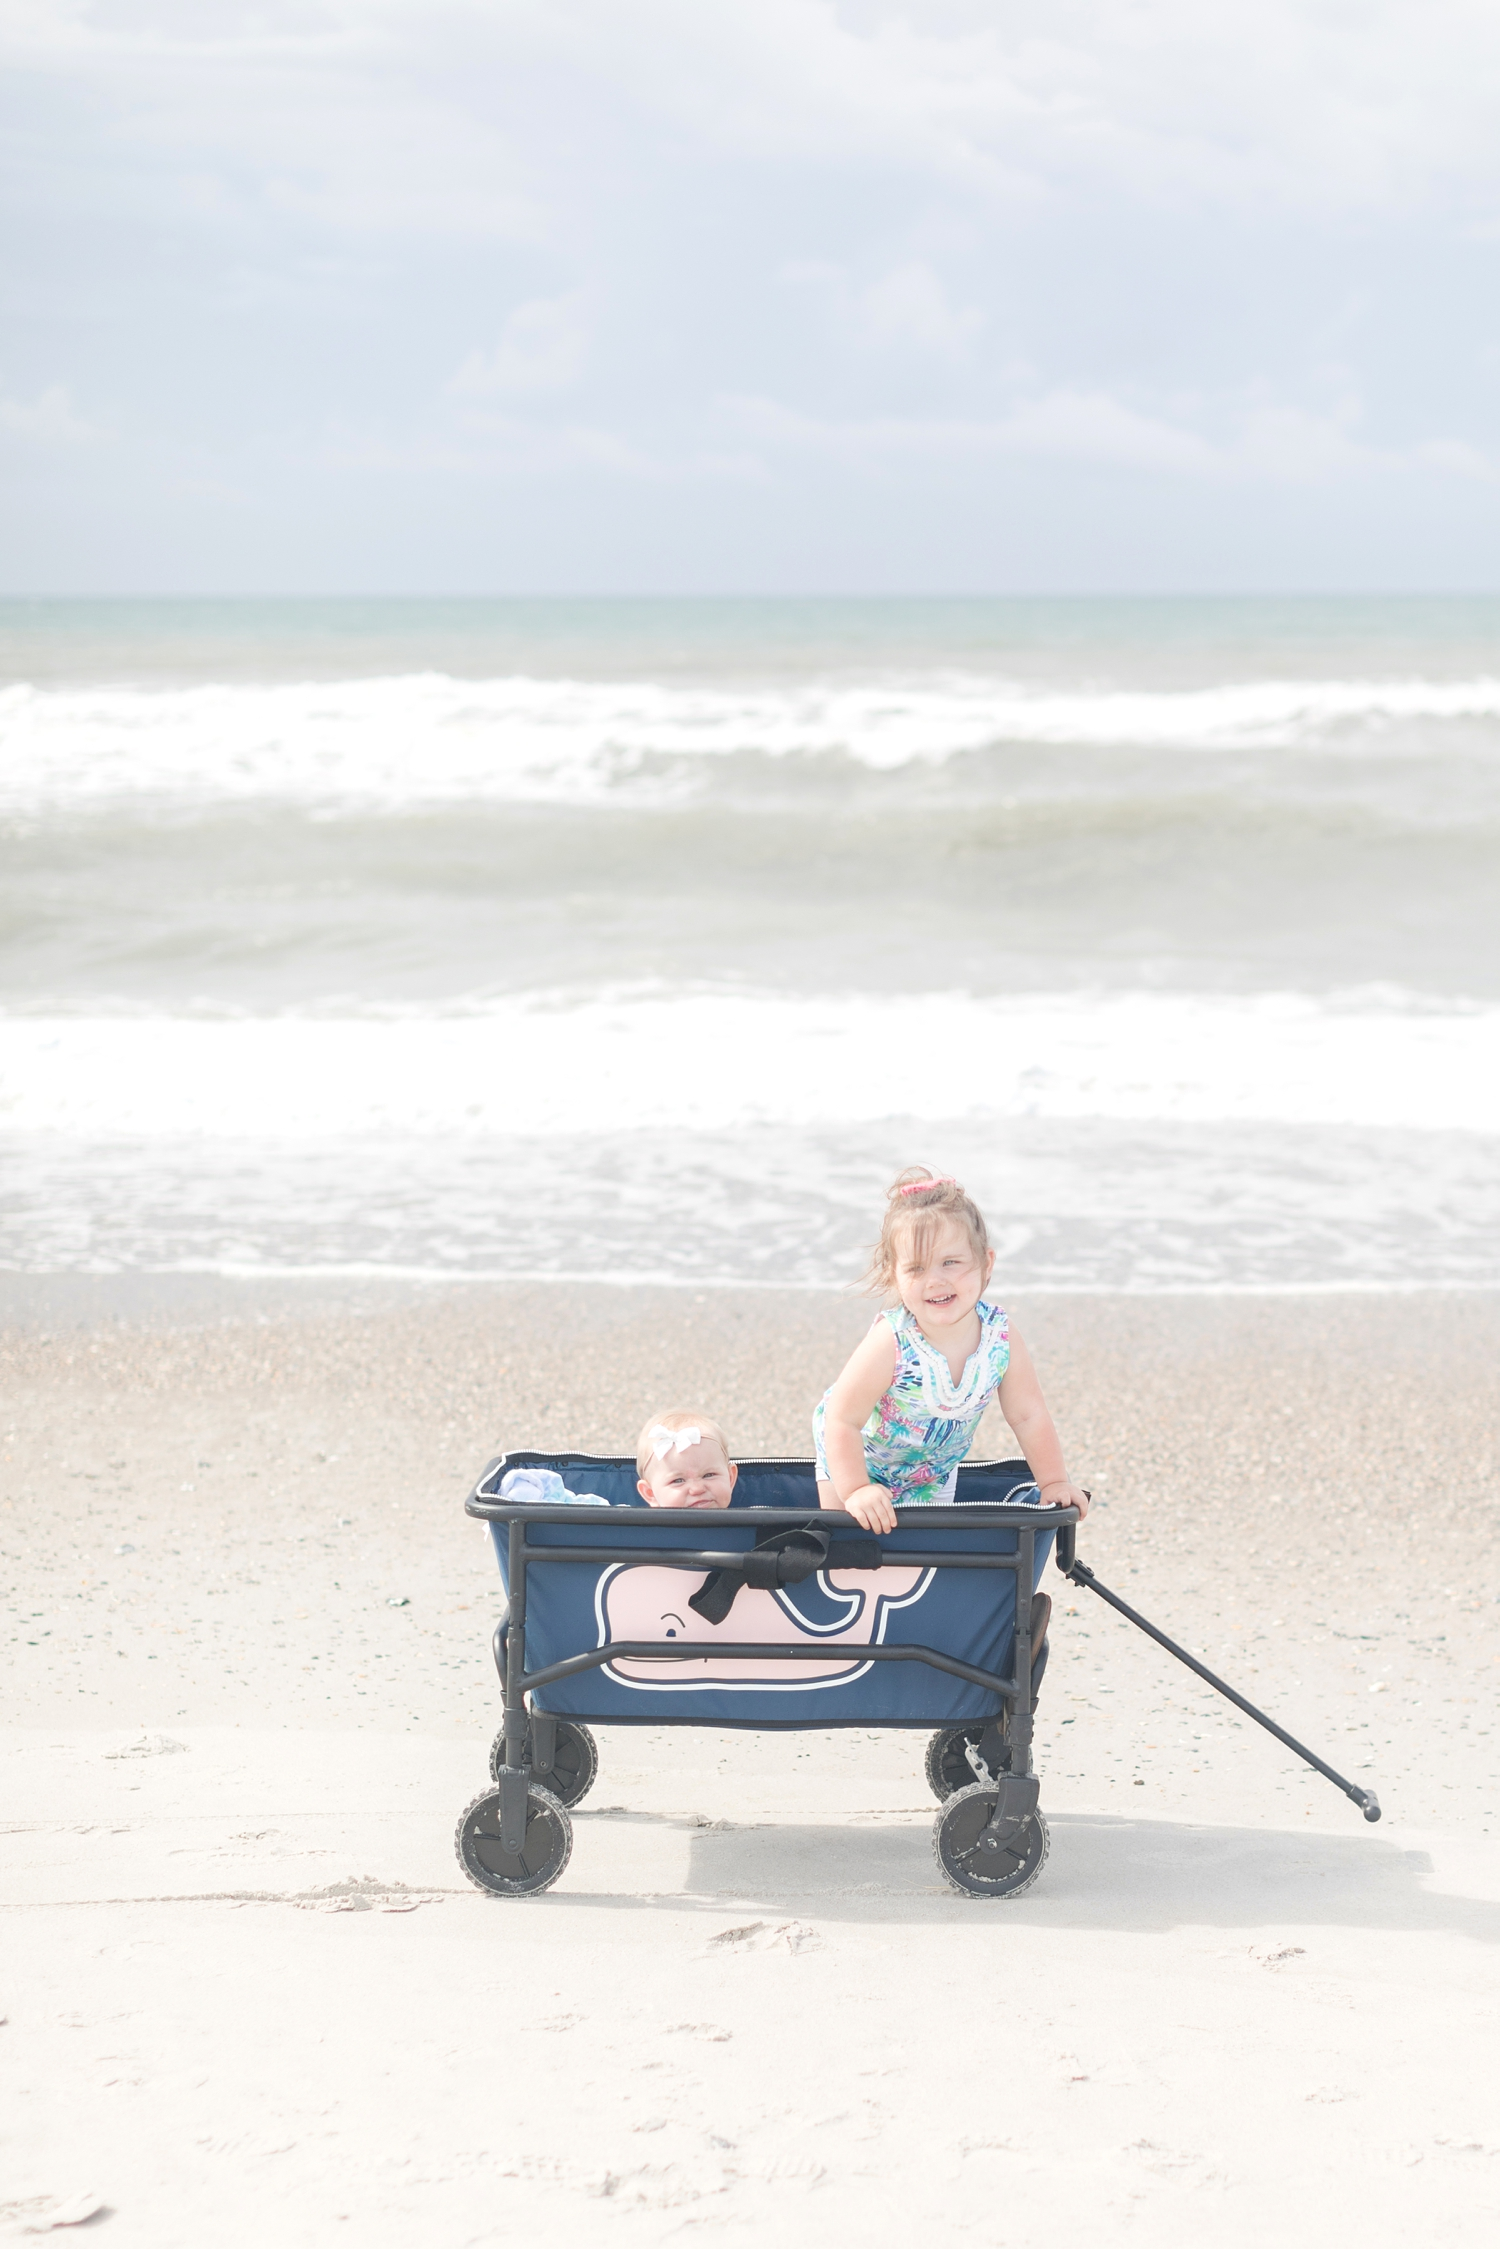 We bought a beach cart this year and this was the other amazing and necessary piece that we used everyday! It was nice because the kids can ride in it or you can put everything in there and not have to carry it all.